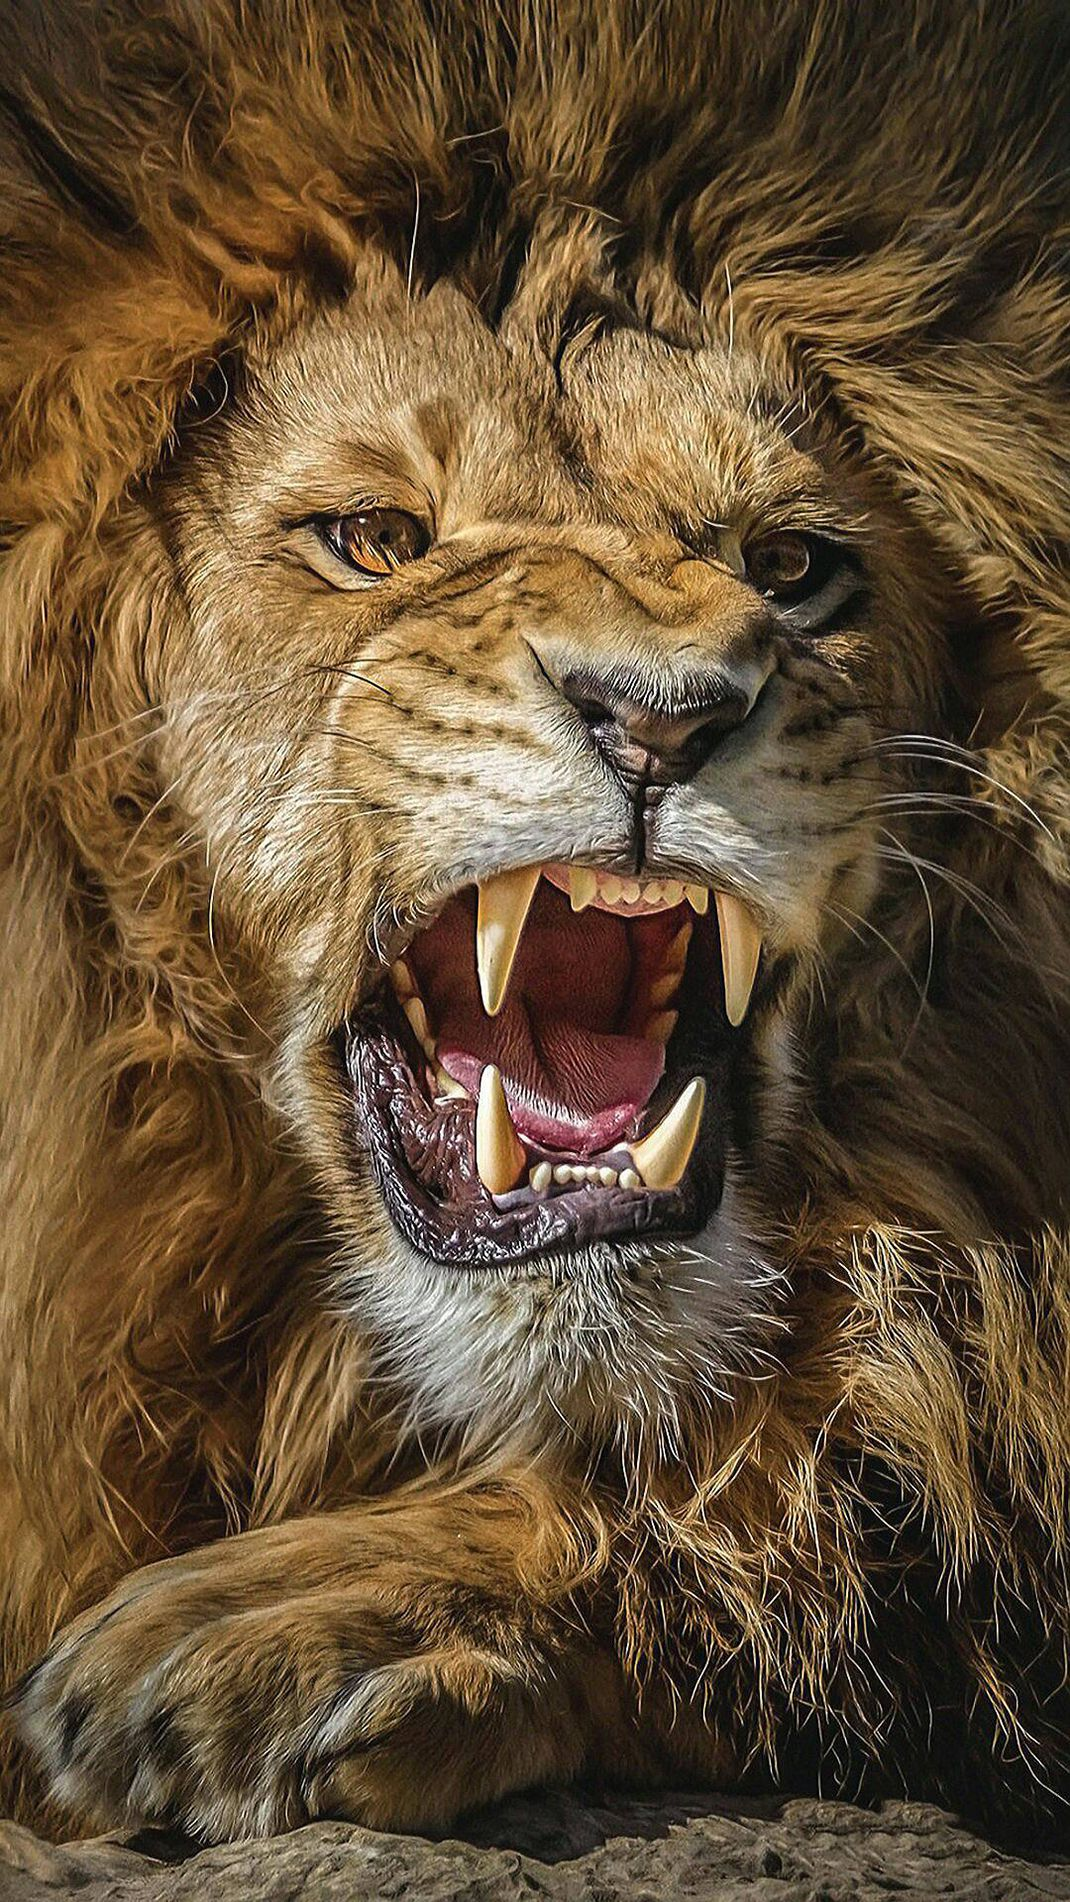 Great Lion Ultra Hd Wallpapers For Andriod Download In